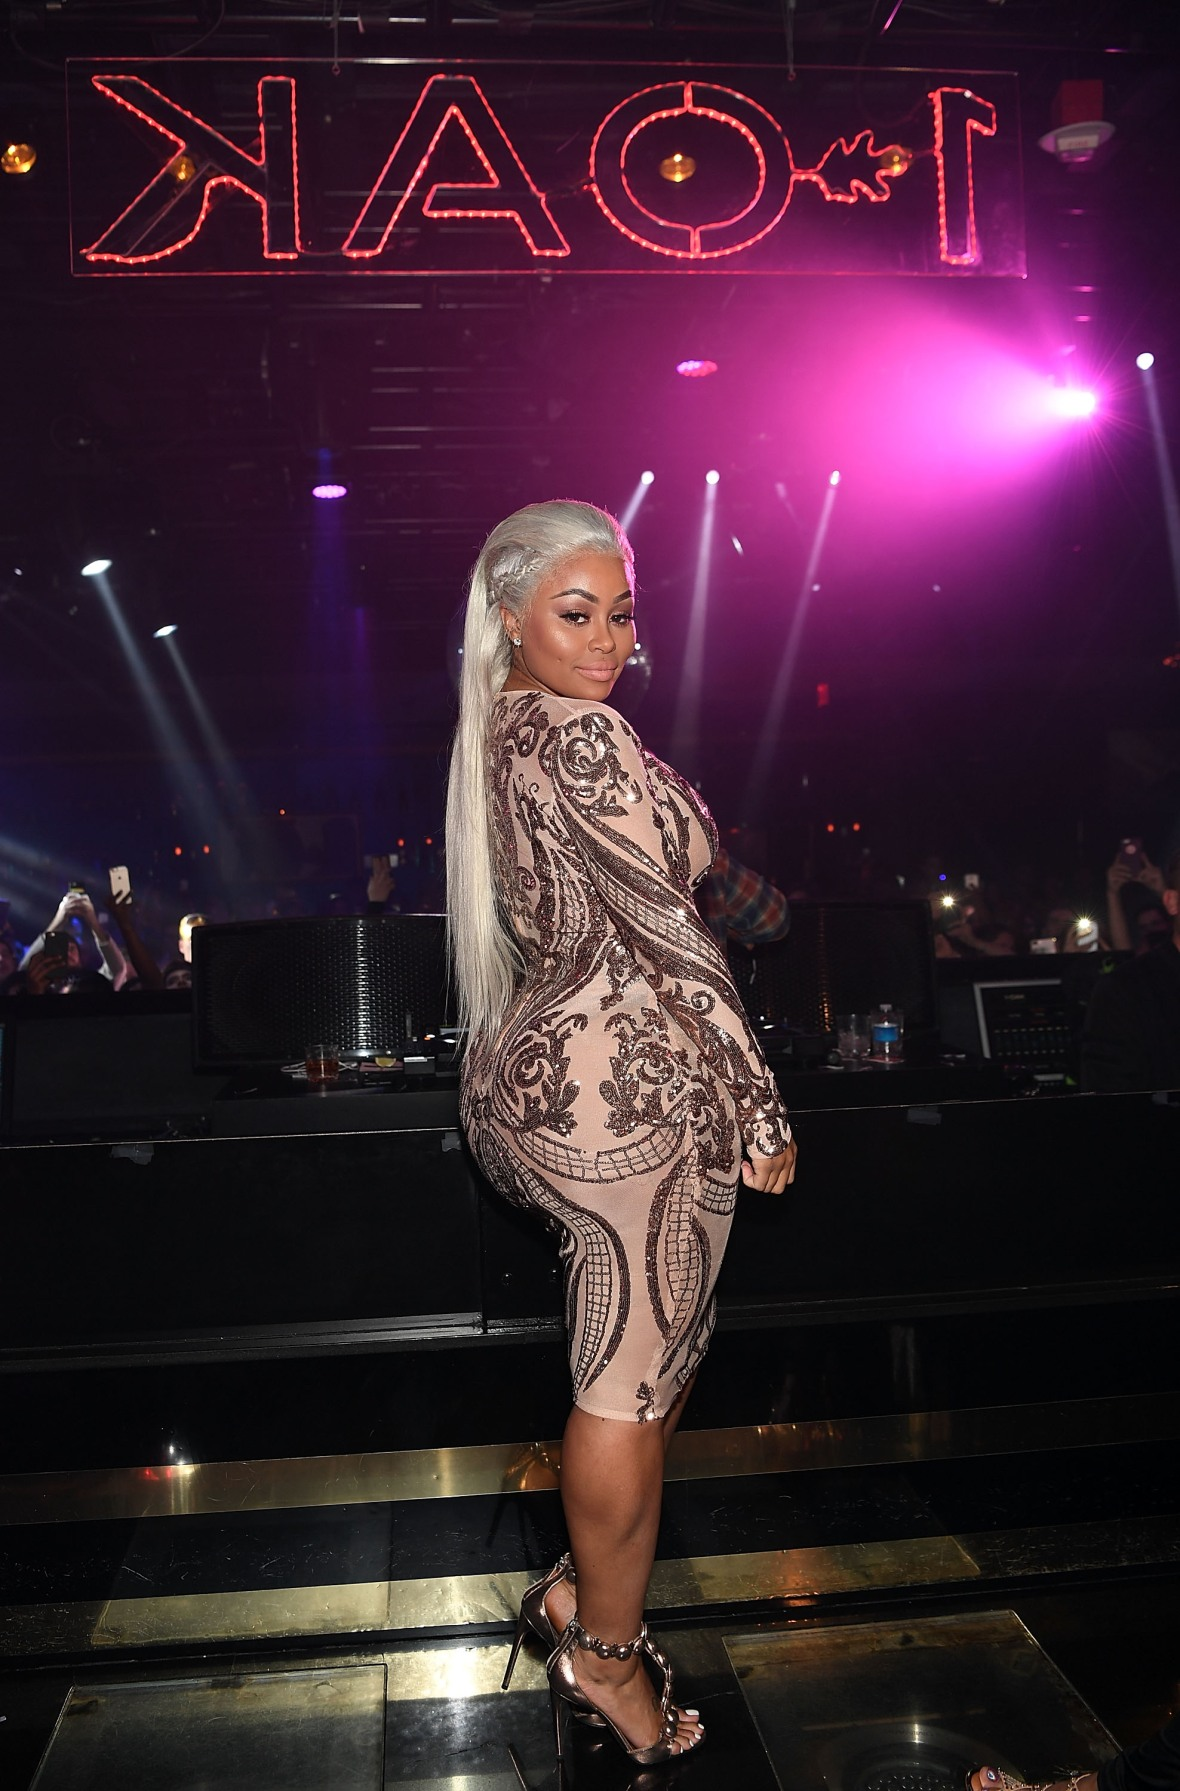 blac chyna getty images